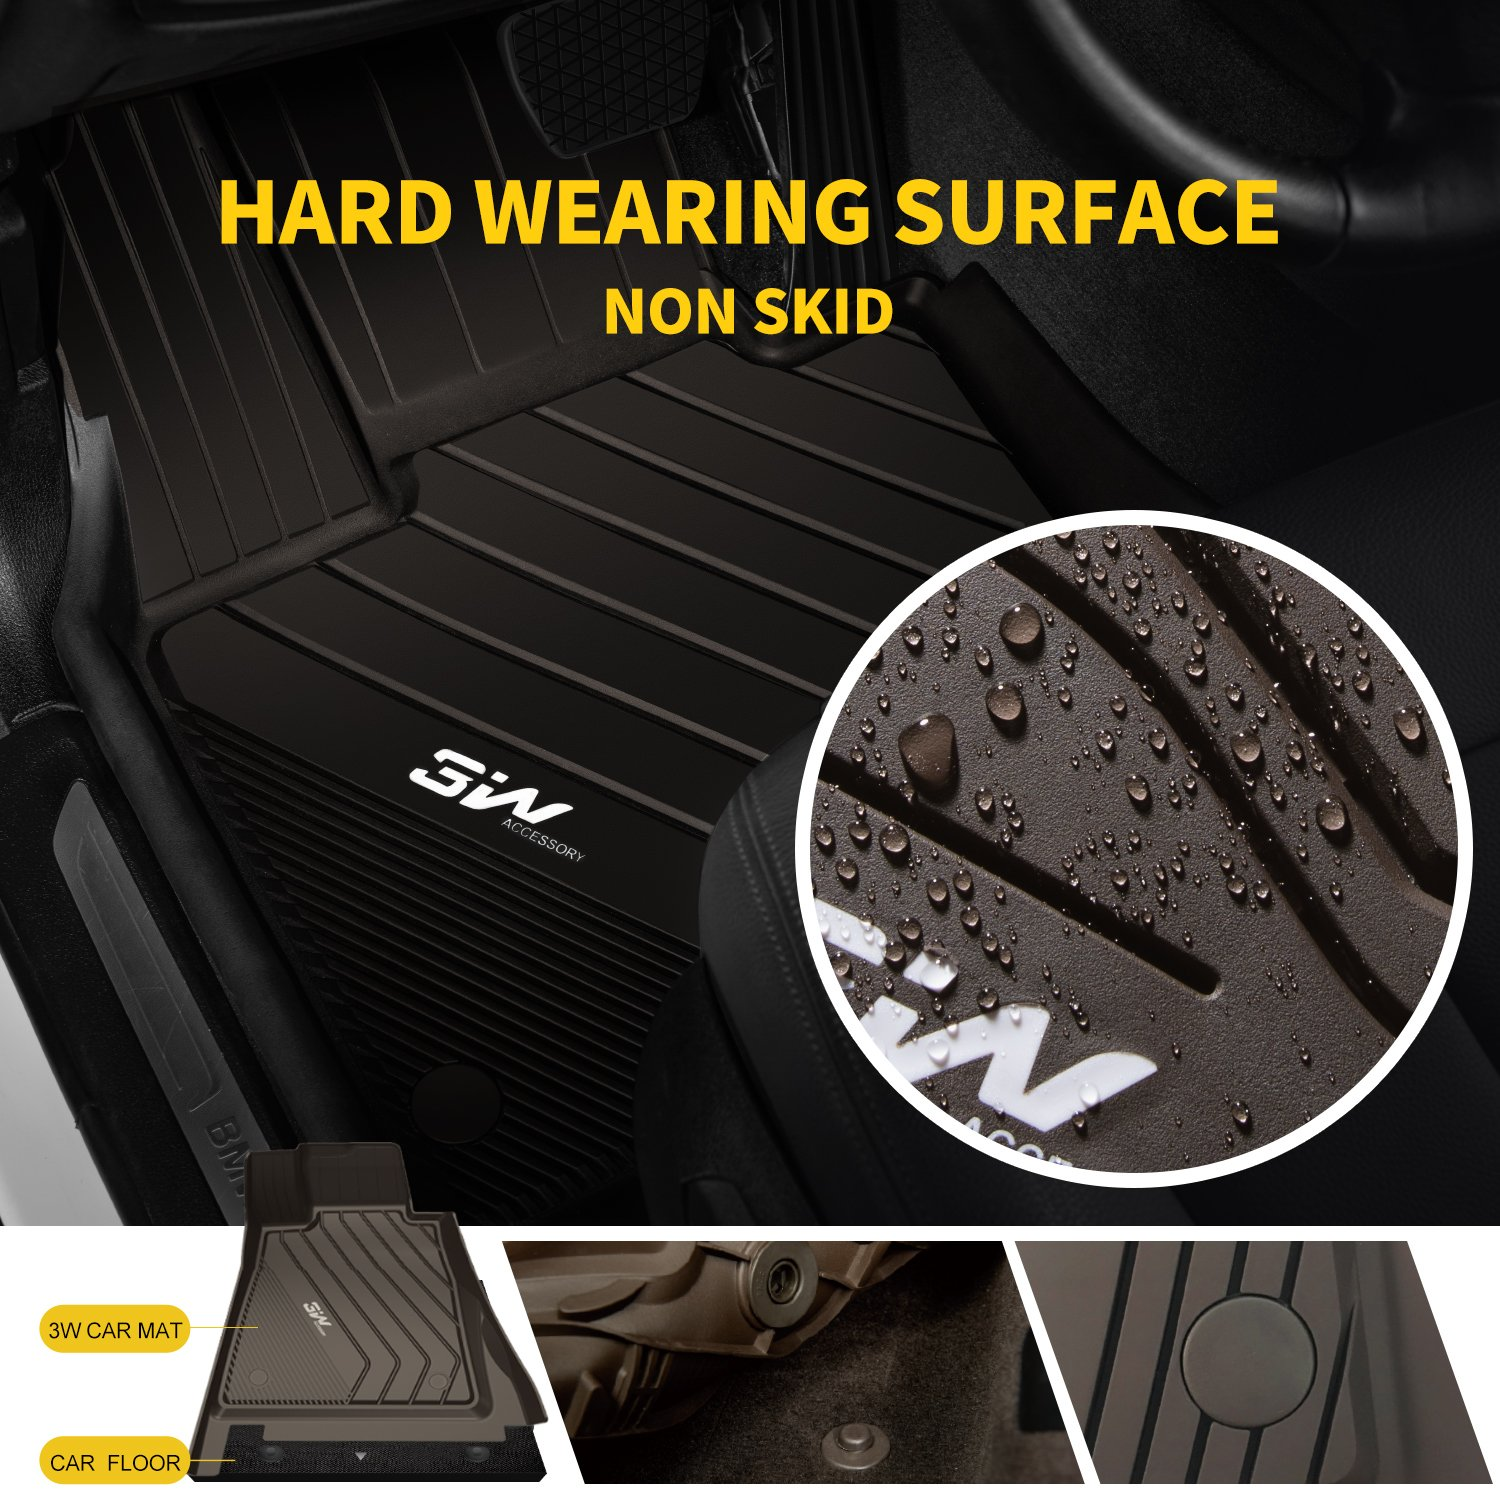 3W Floor Mats for BMW 3 Series F30/F31 (2013-2018) Rear Wheel Drive Only  All Weather Heavy Duty Auto Floor Liners Custom Fit Floor Mats Liner  Carpet,